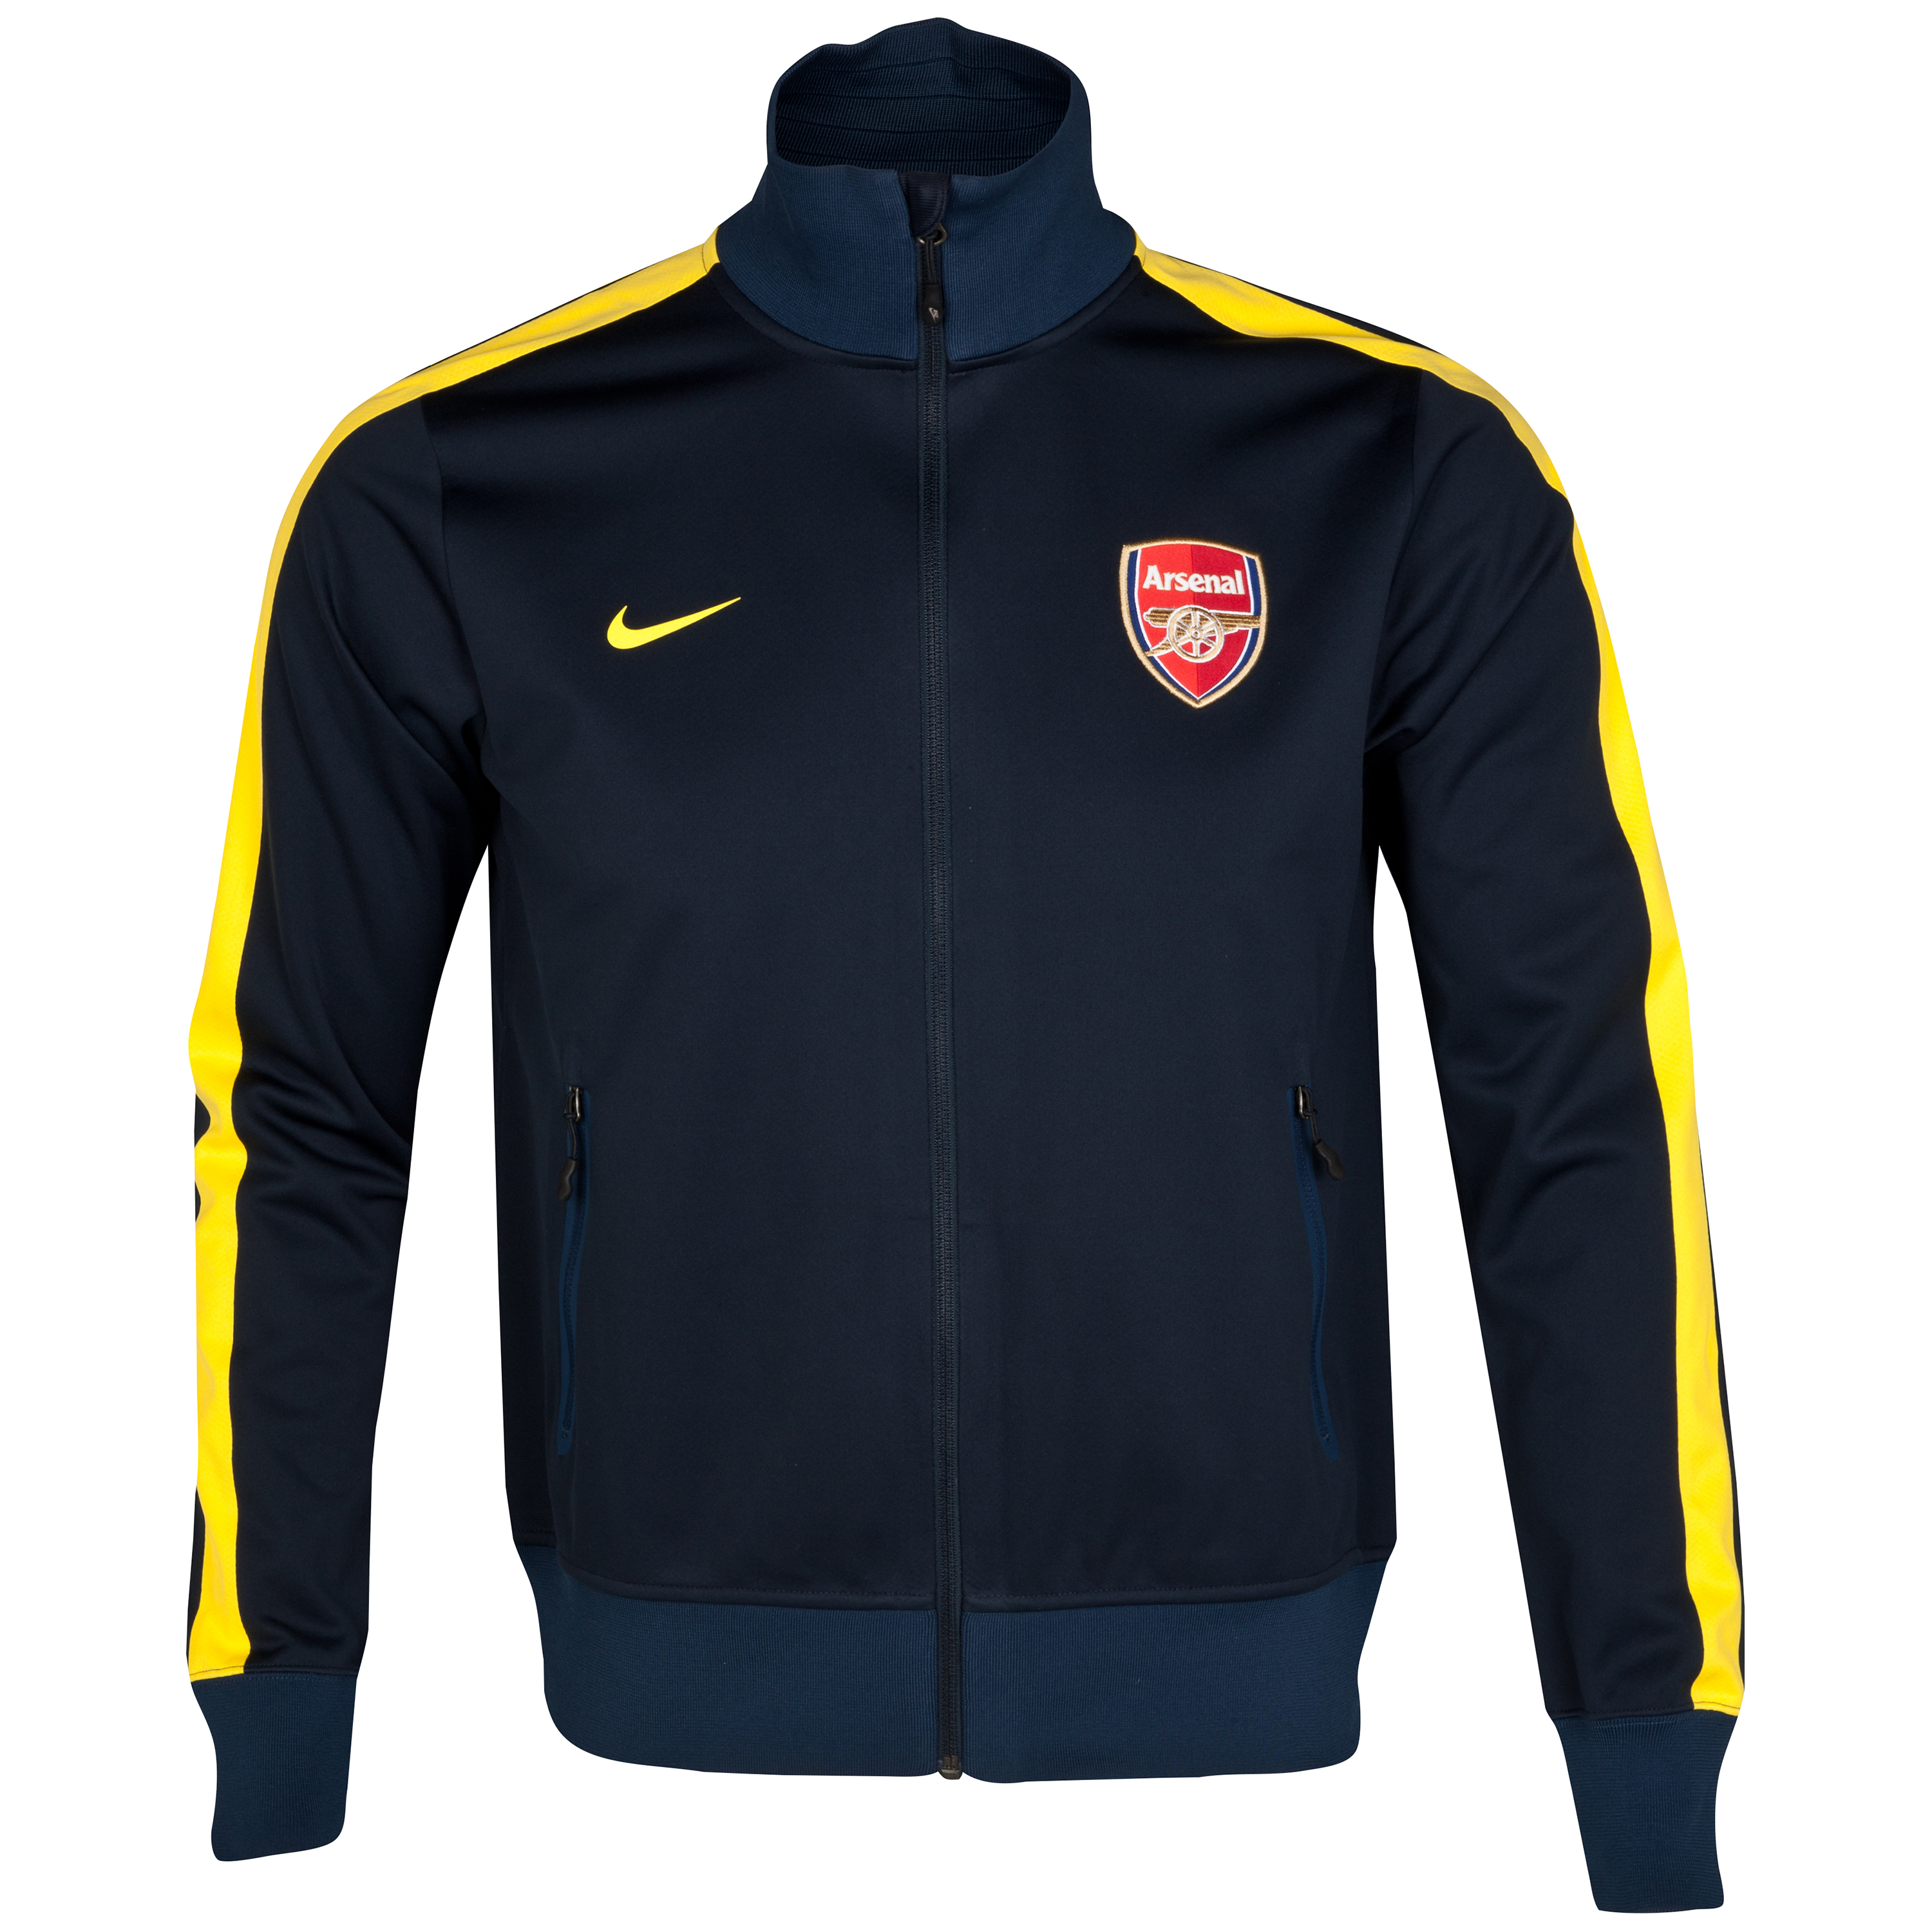 Arsenal Authentic UEFA Champions League N98 Jacket - Dark Obsidian/Tour Yellow